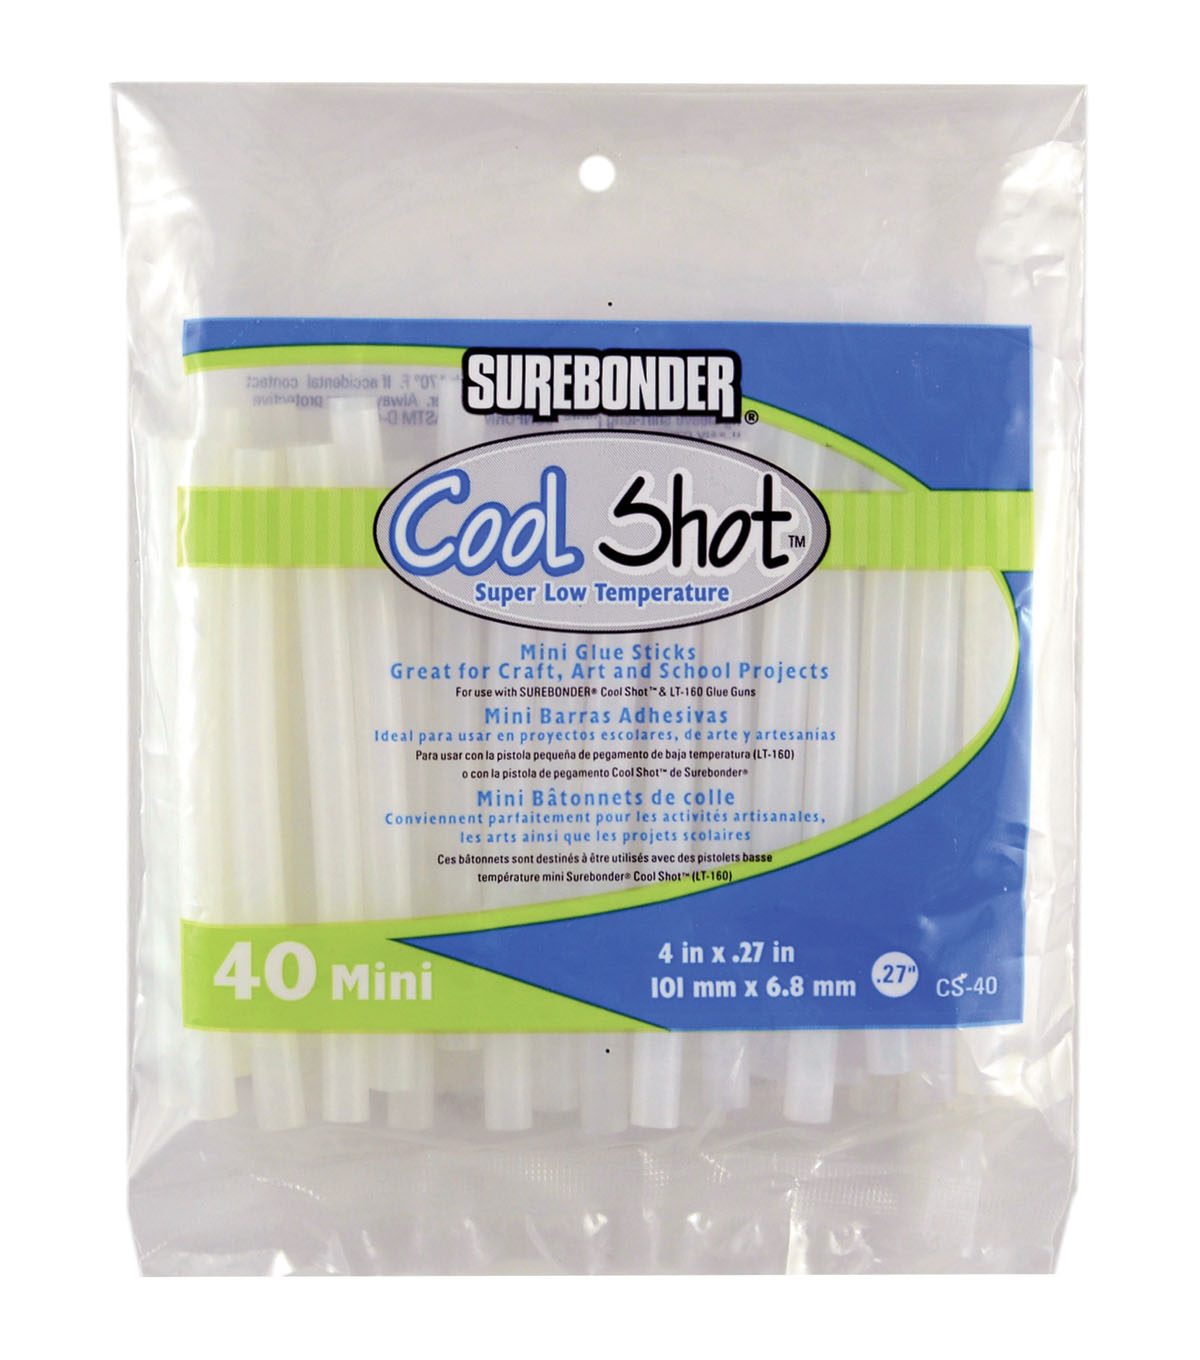 Surebonder Cool Shot 40 pk Super Low Temperature Mini Glue Sticks-Clear